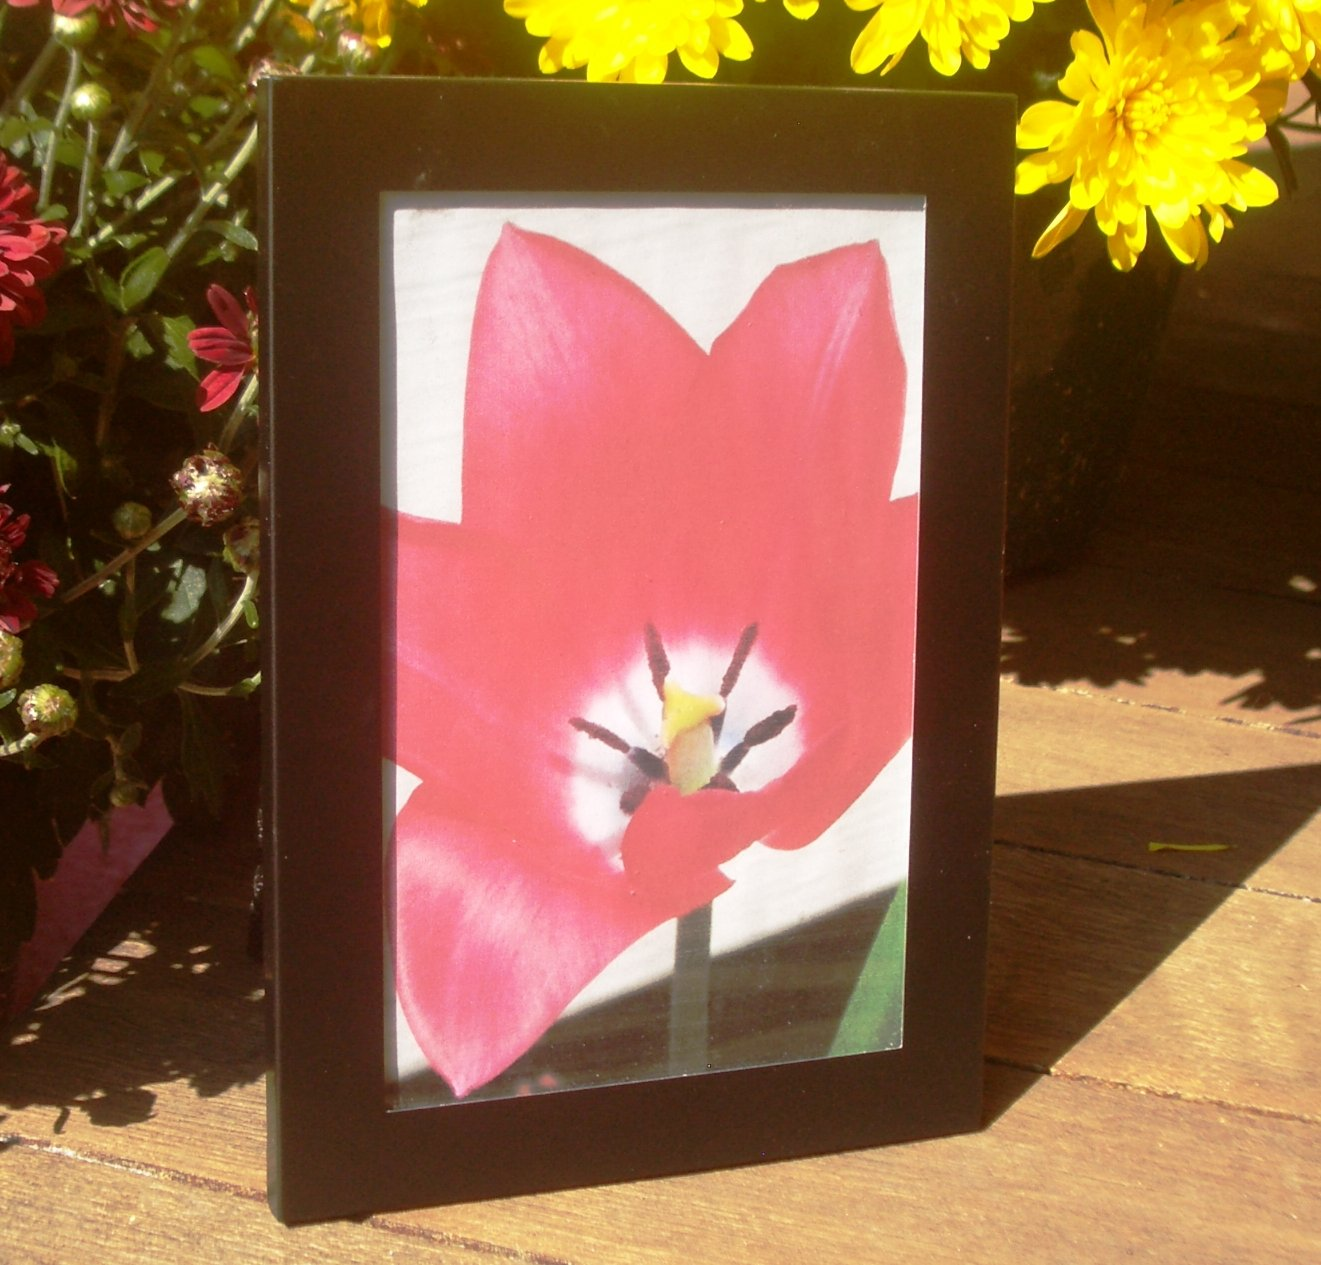 "Simple Black Metal Picture Frame 3 1/2"" x 5 1/2"" Inside Measurement"